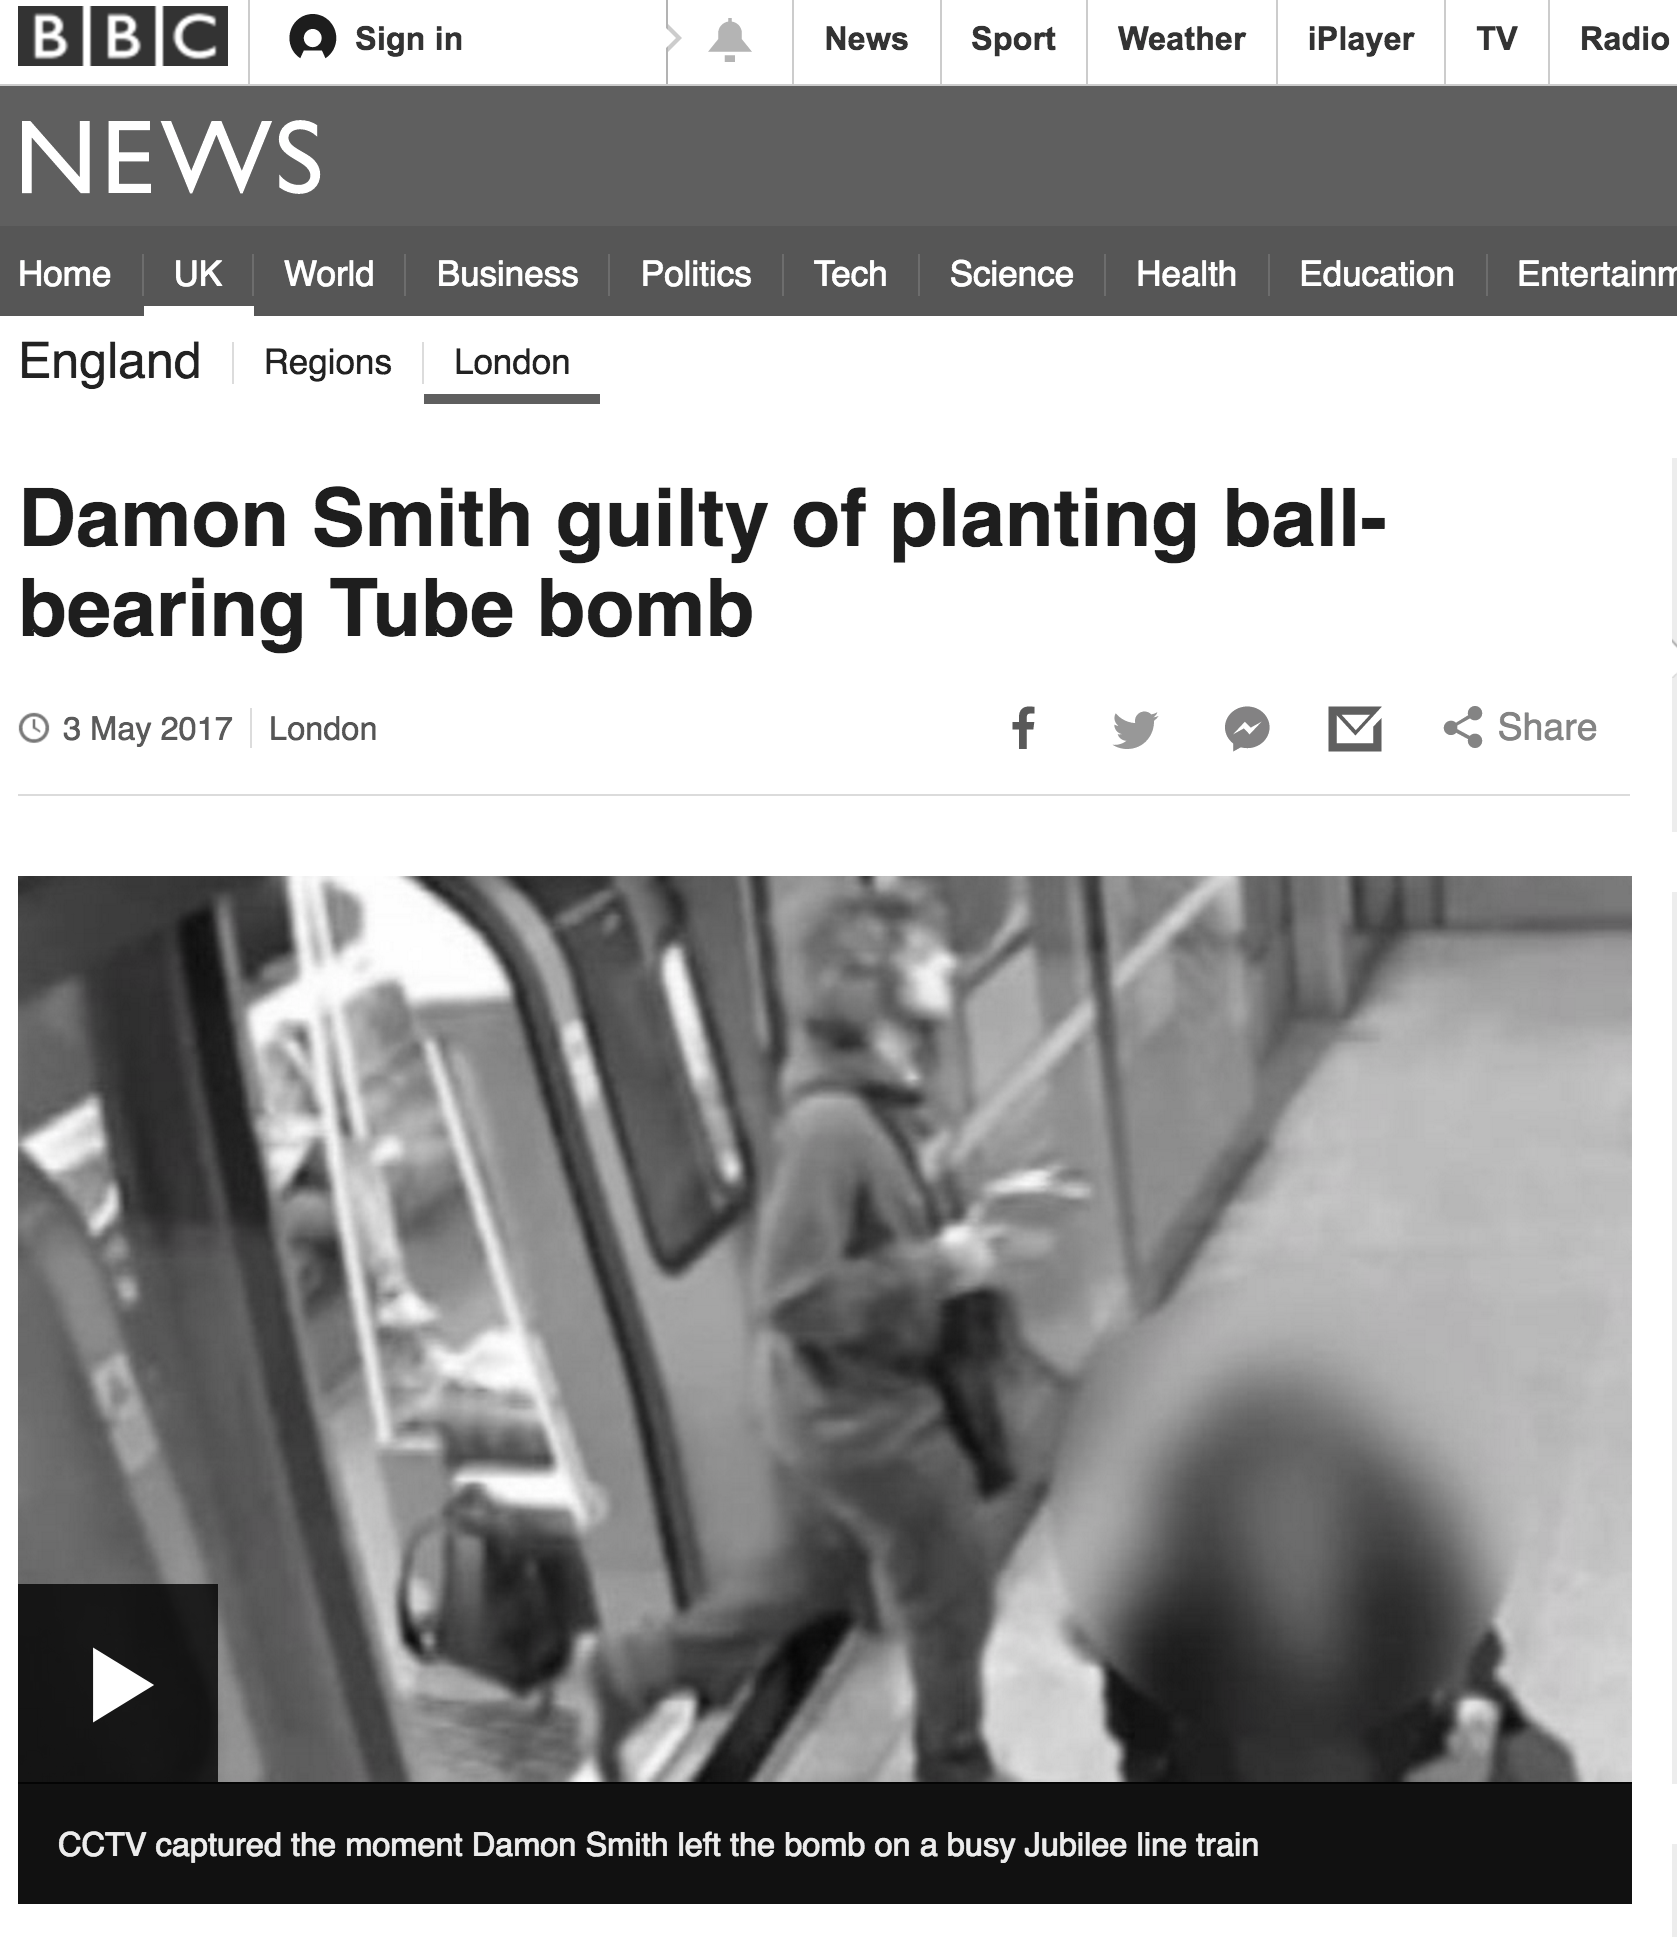 The BBC article on Damon Smith conviction